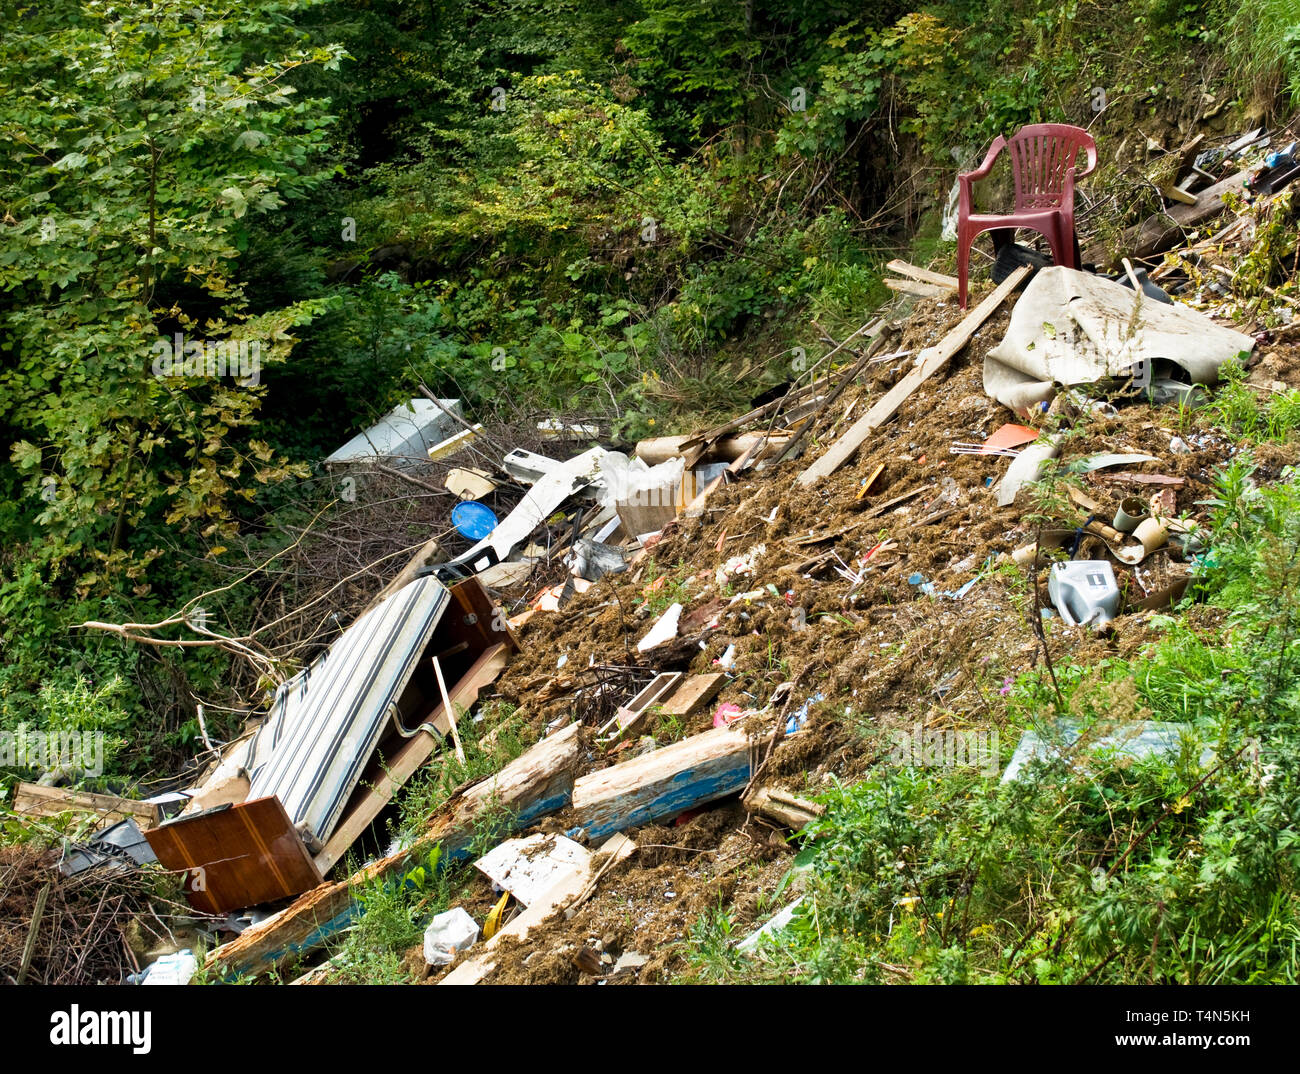 Garbage dump - polluted forest - Stock Image